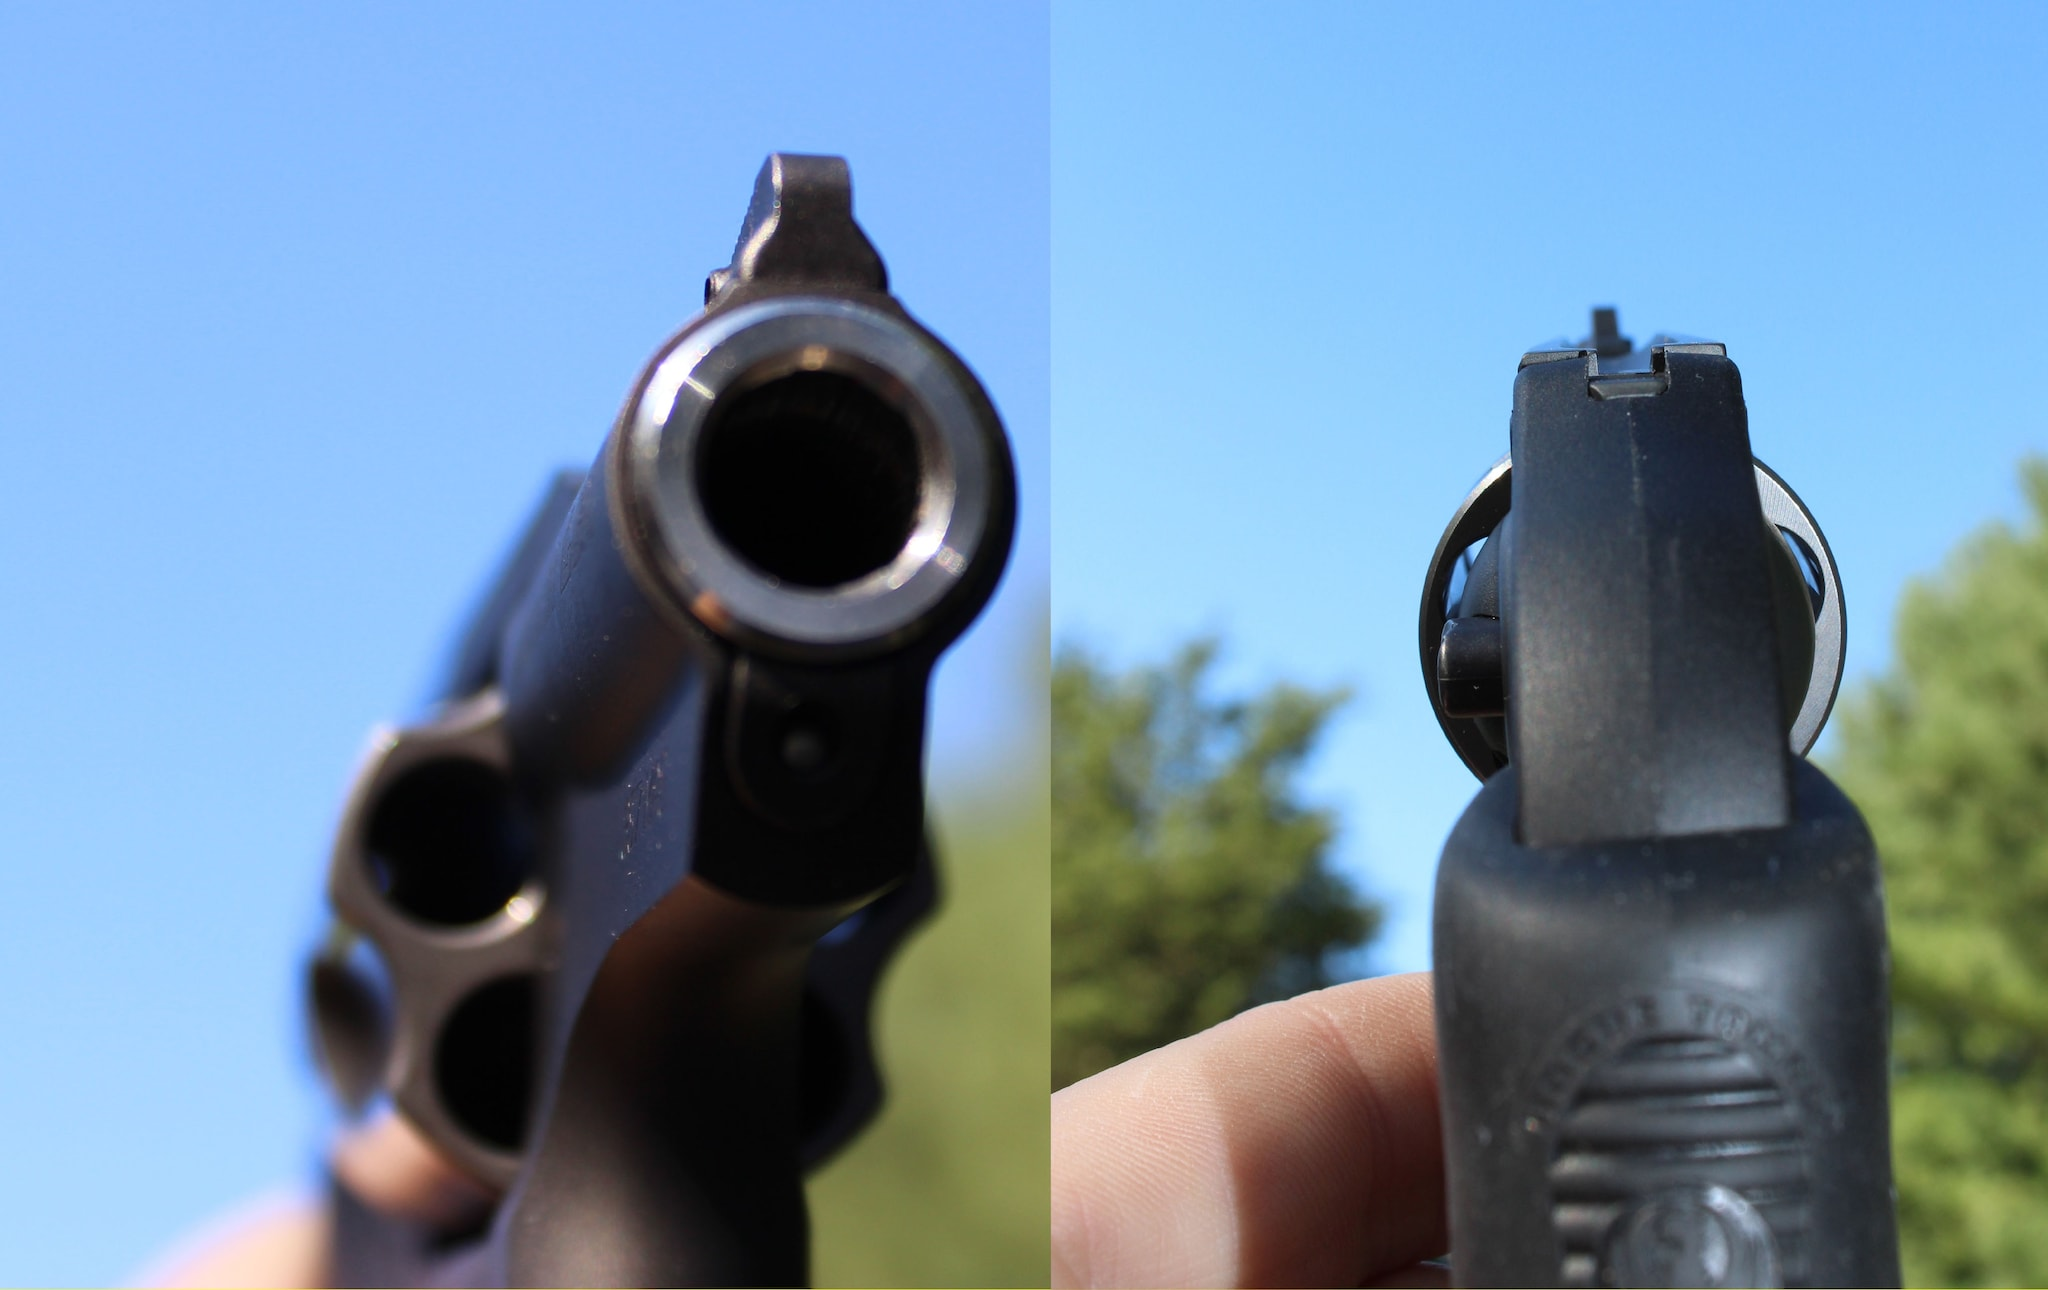 The Ruger LCR's Sights